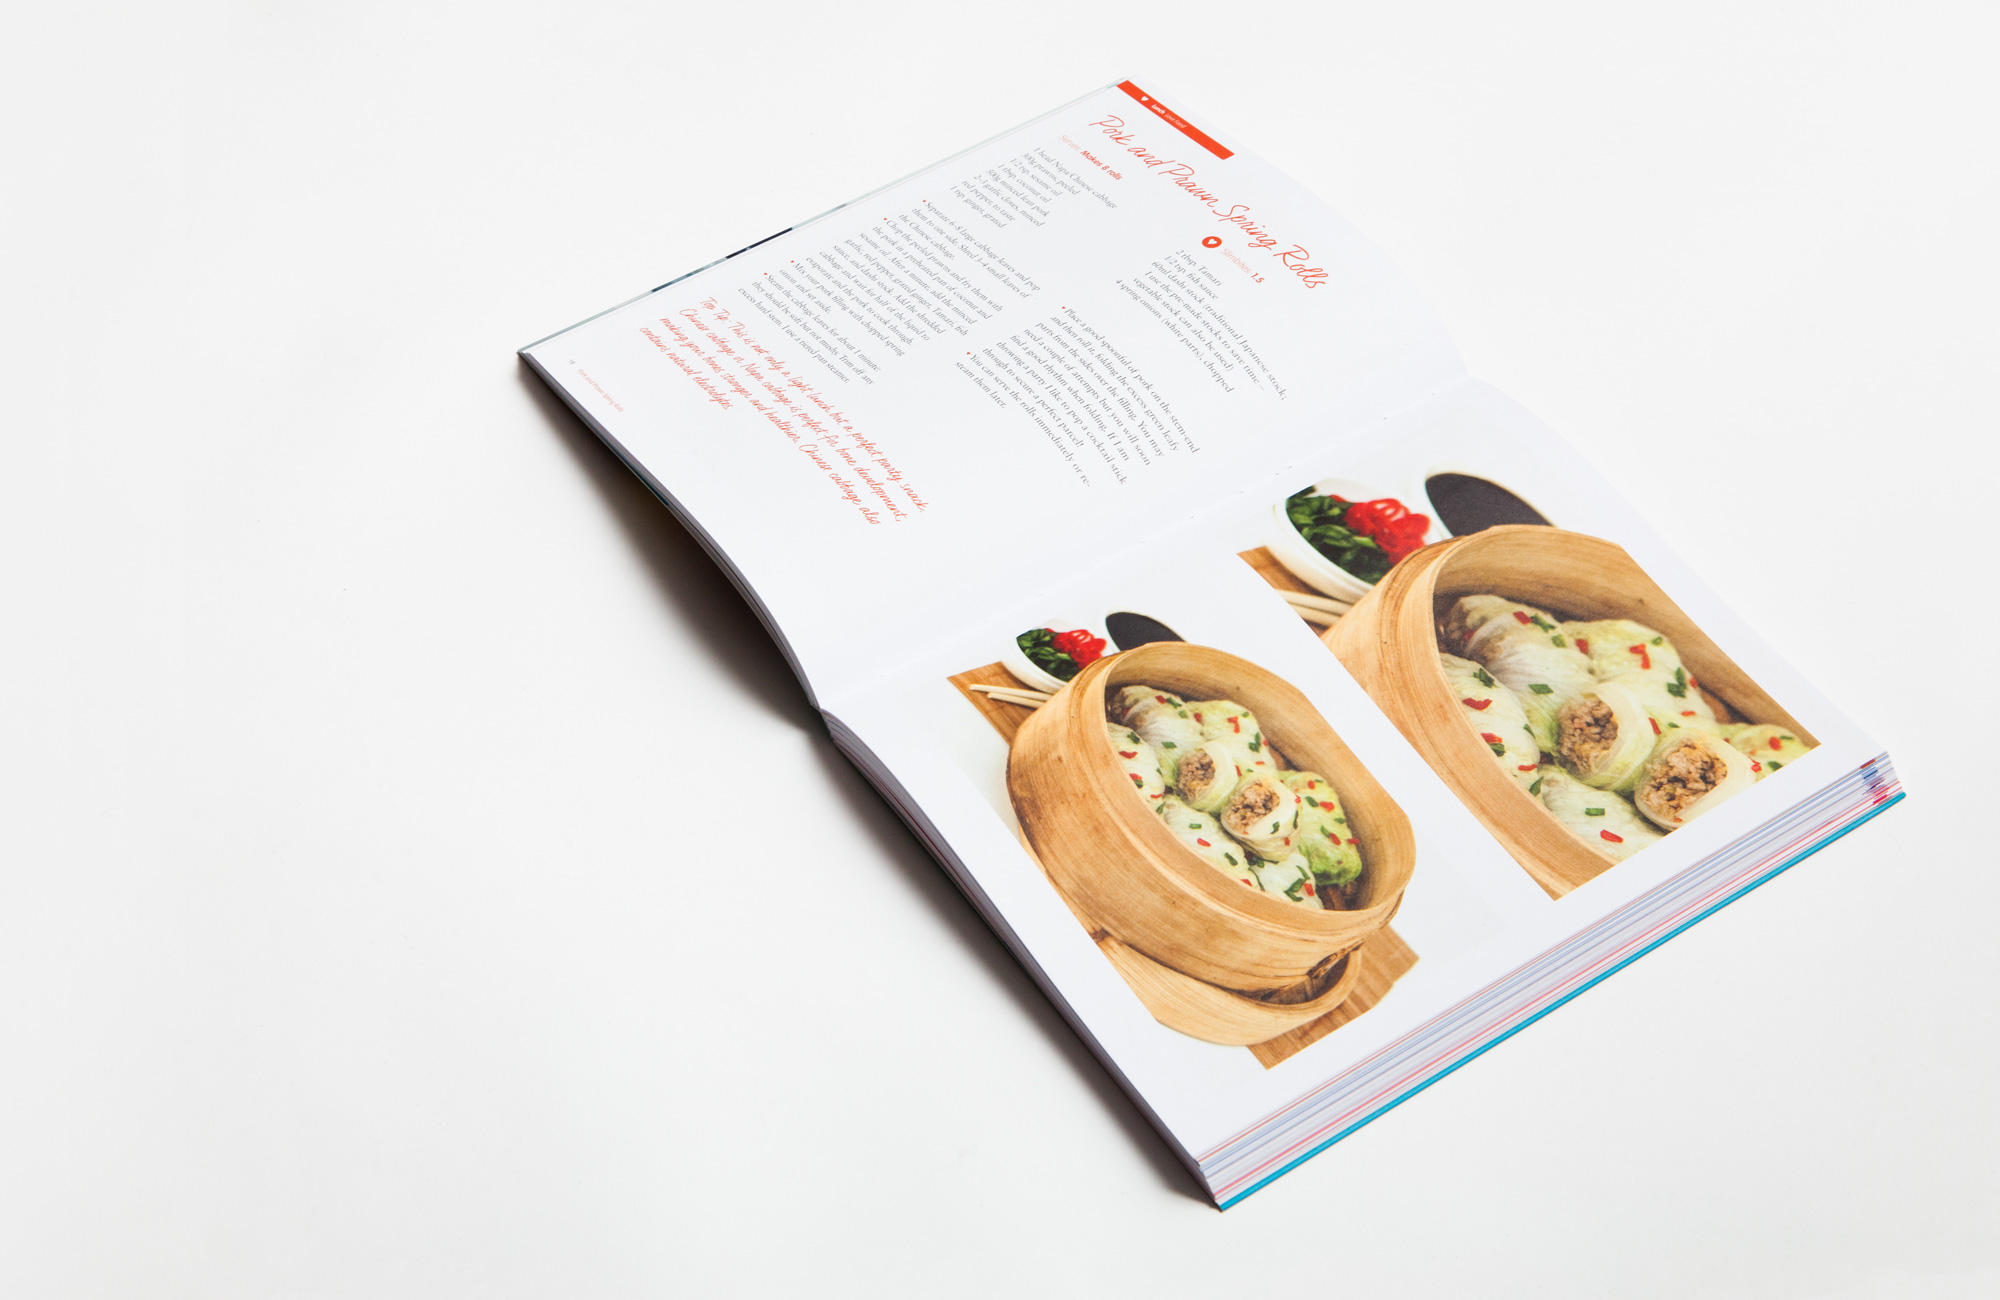 Love food leard design studio of steve leard a graphic designer other book designs you might like forumfinder Choice Image